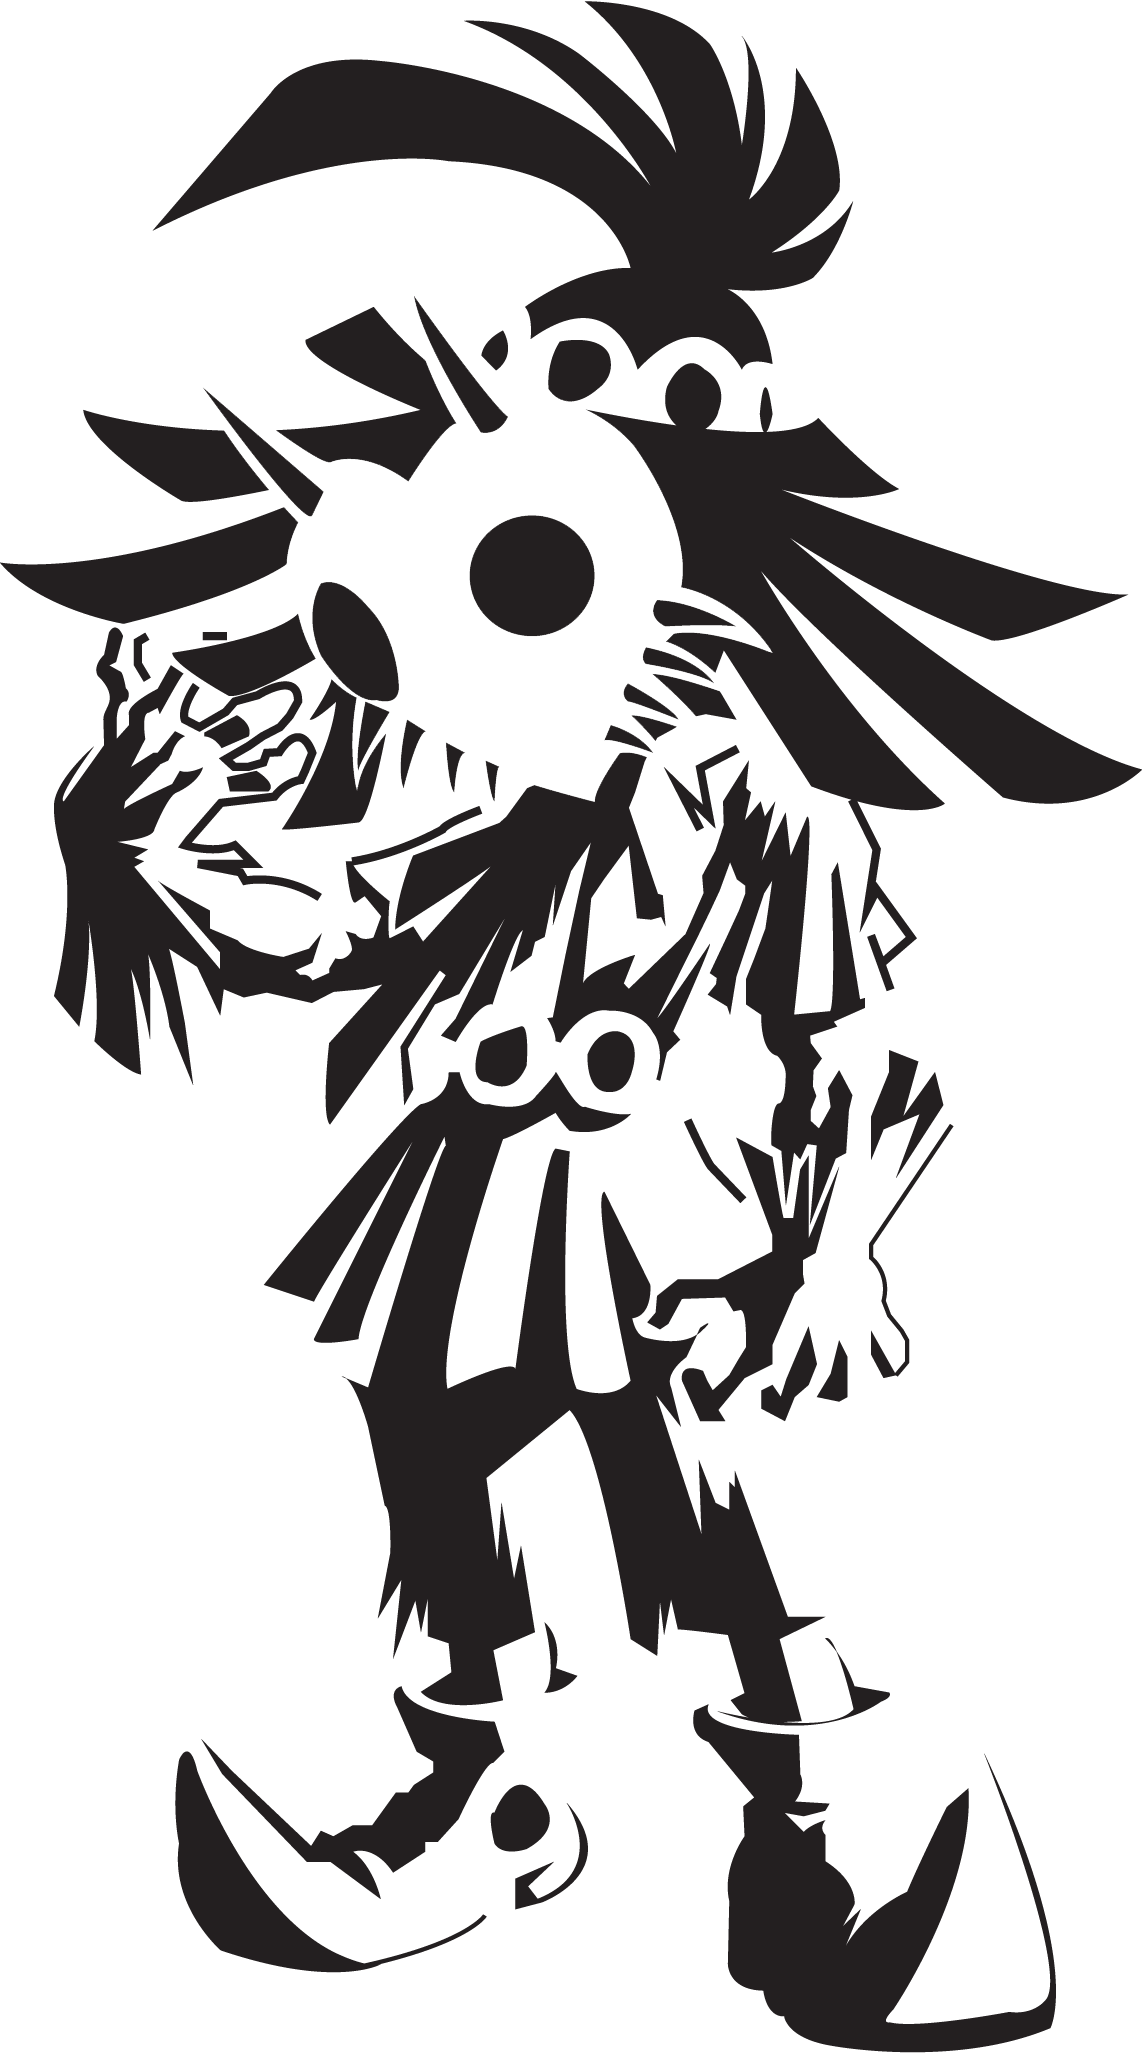 Skull kid stencil legend of zelda obsession pinterest legend